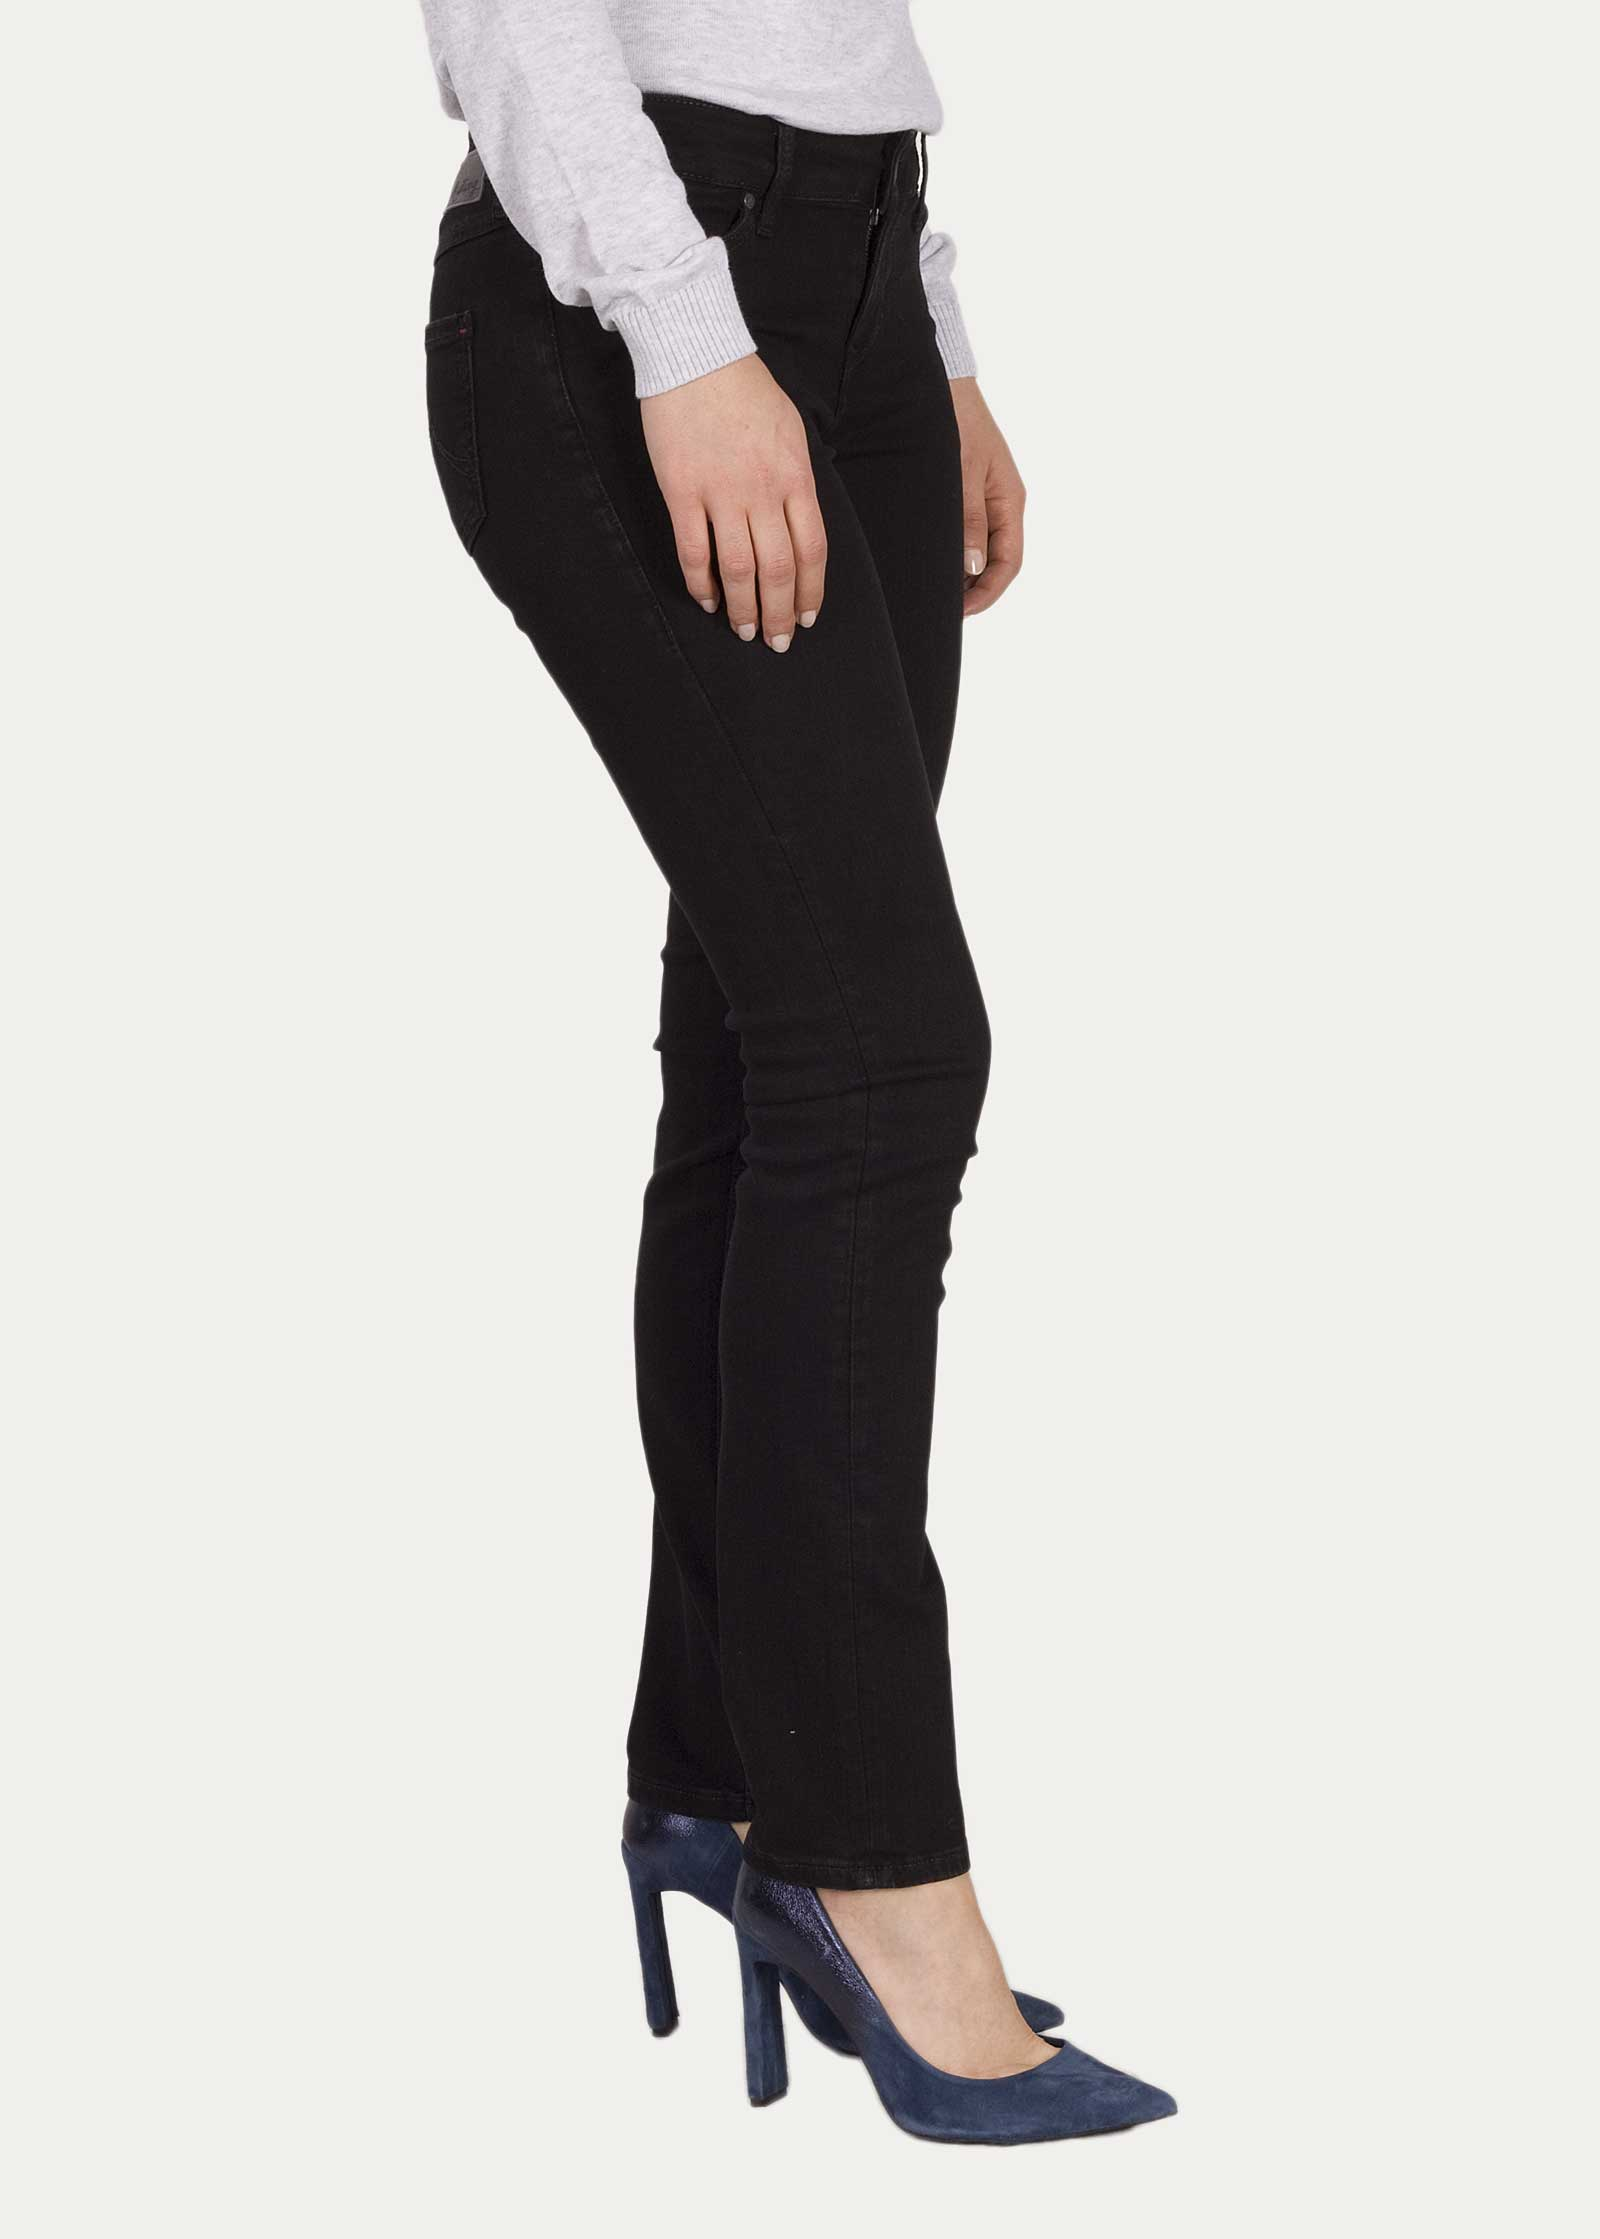 Mustang® Jasmin Slim - 490 Midnight Black - elements